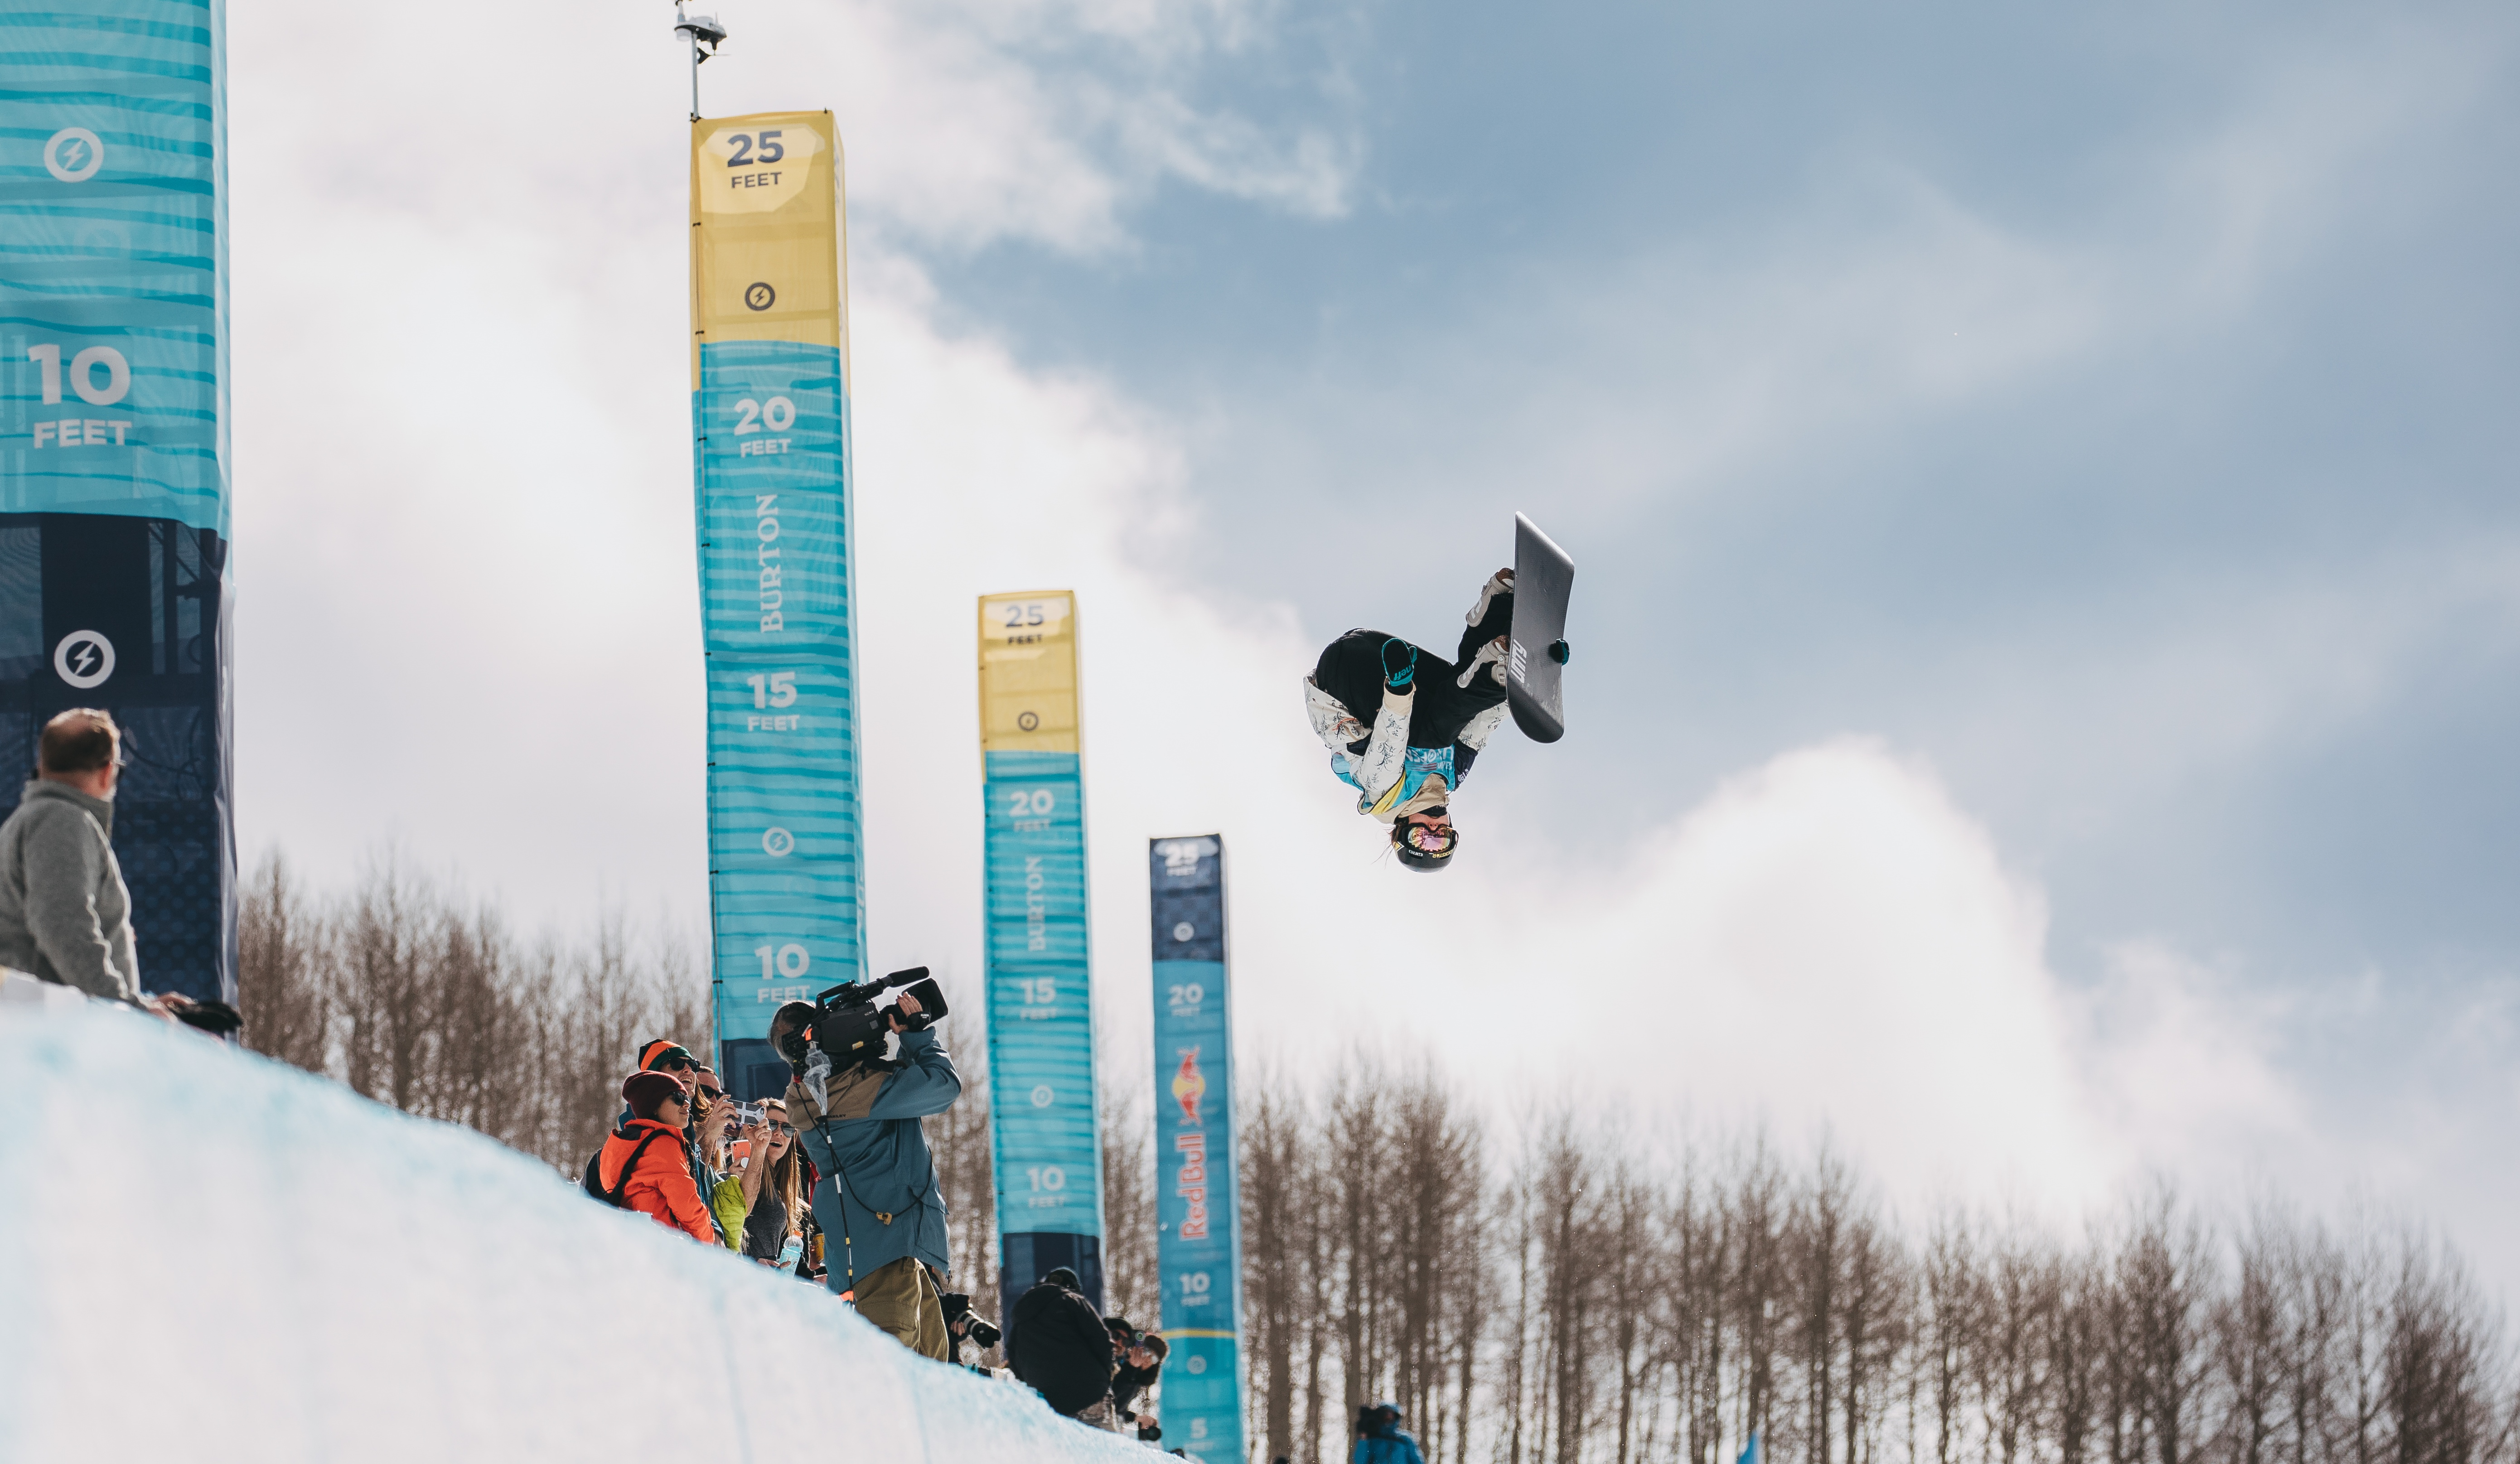 Arielle Gold at Vail